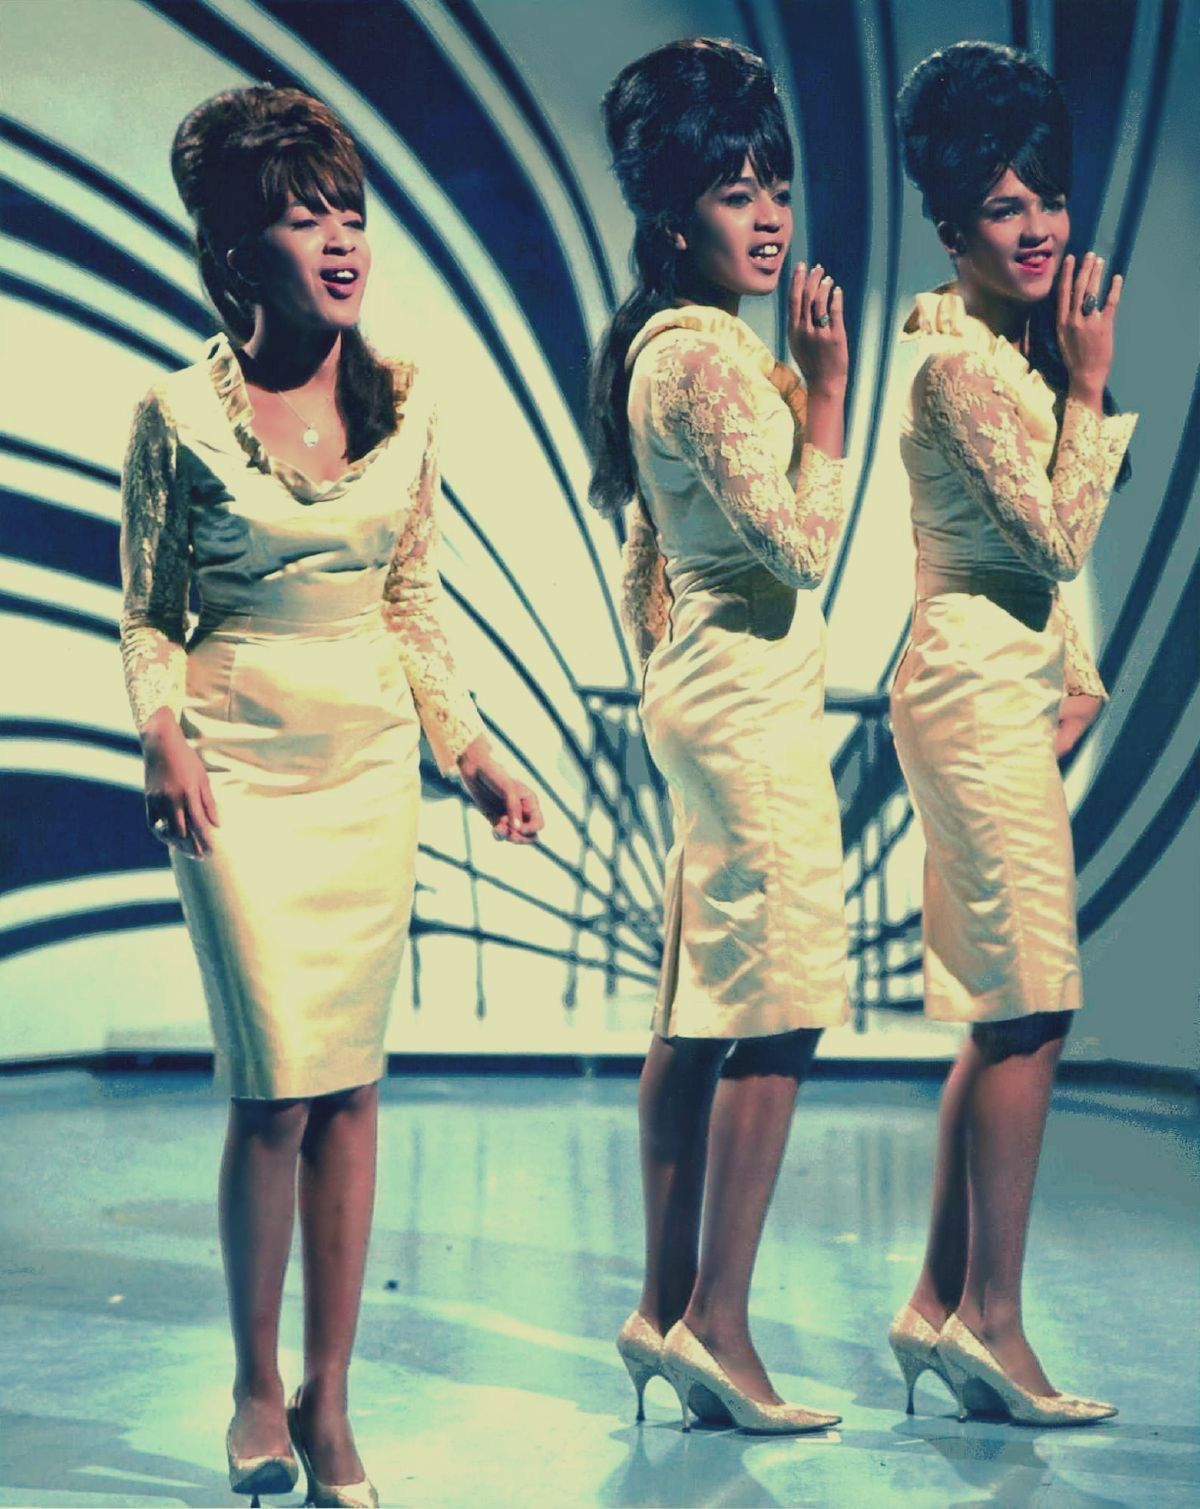 the ronettes | phil spector and co. | the ronettes, ronnie